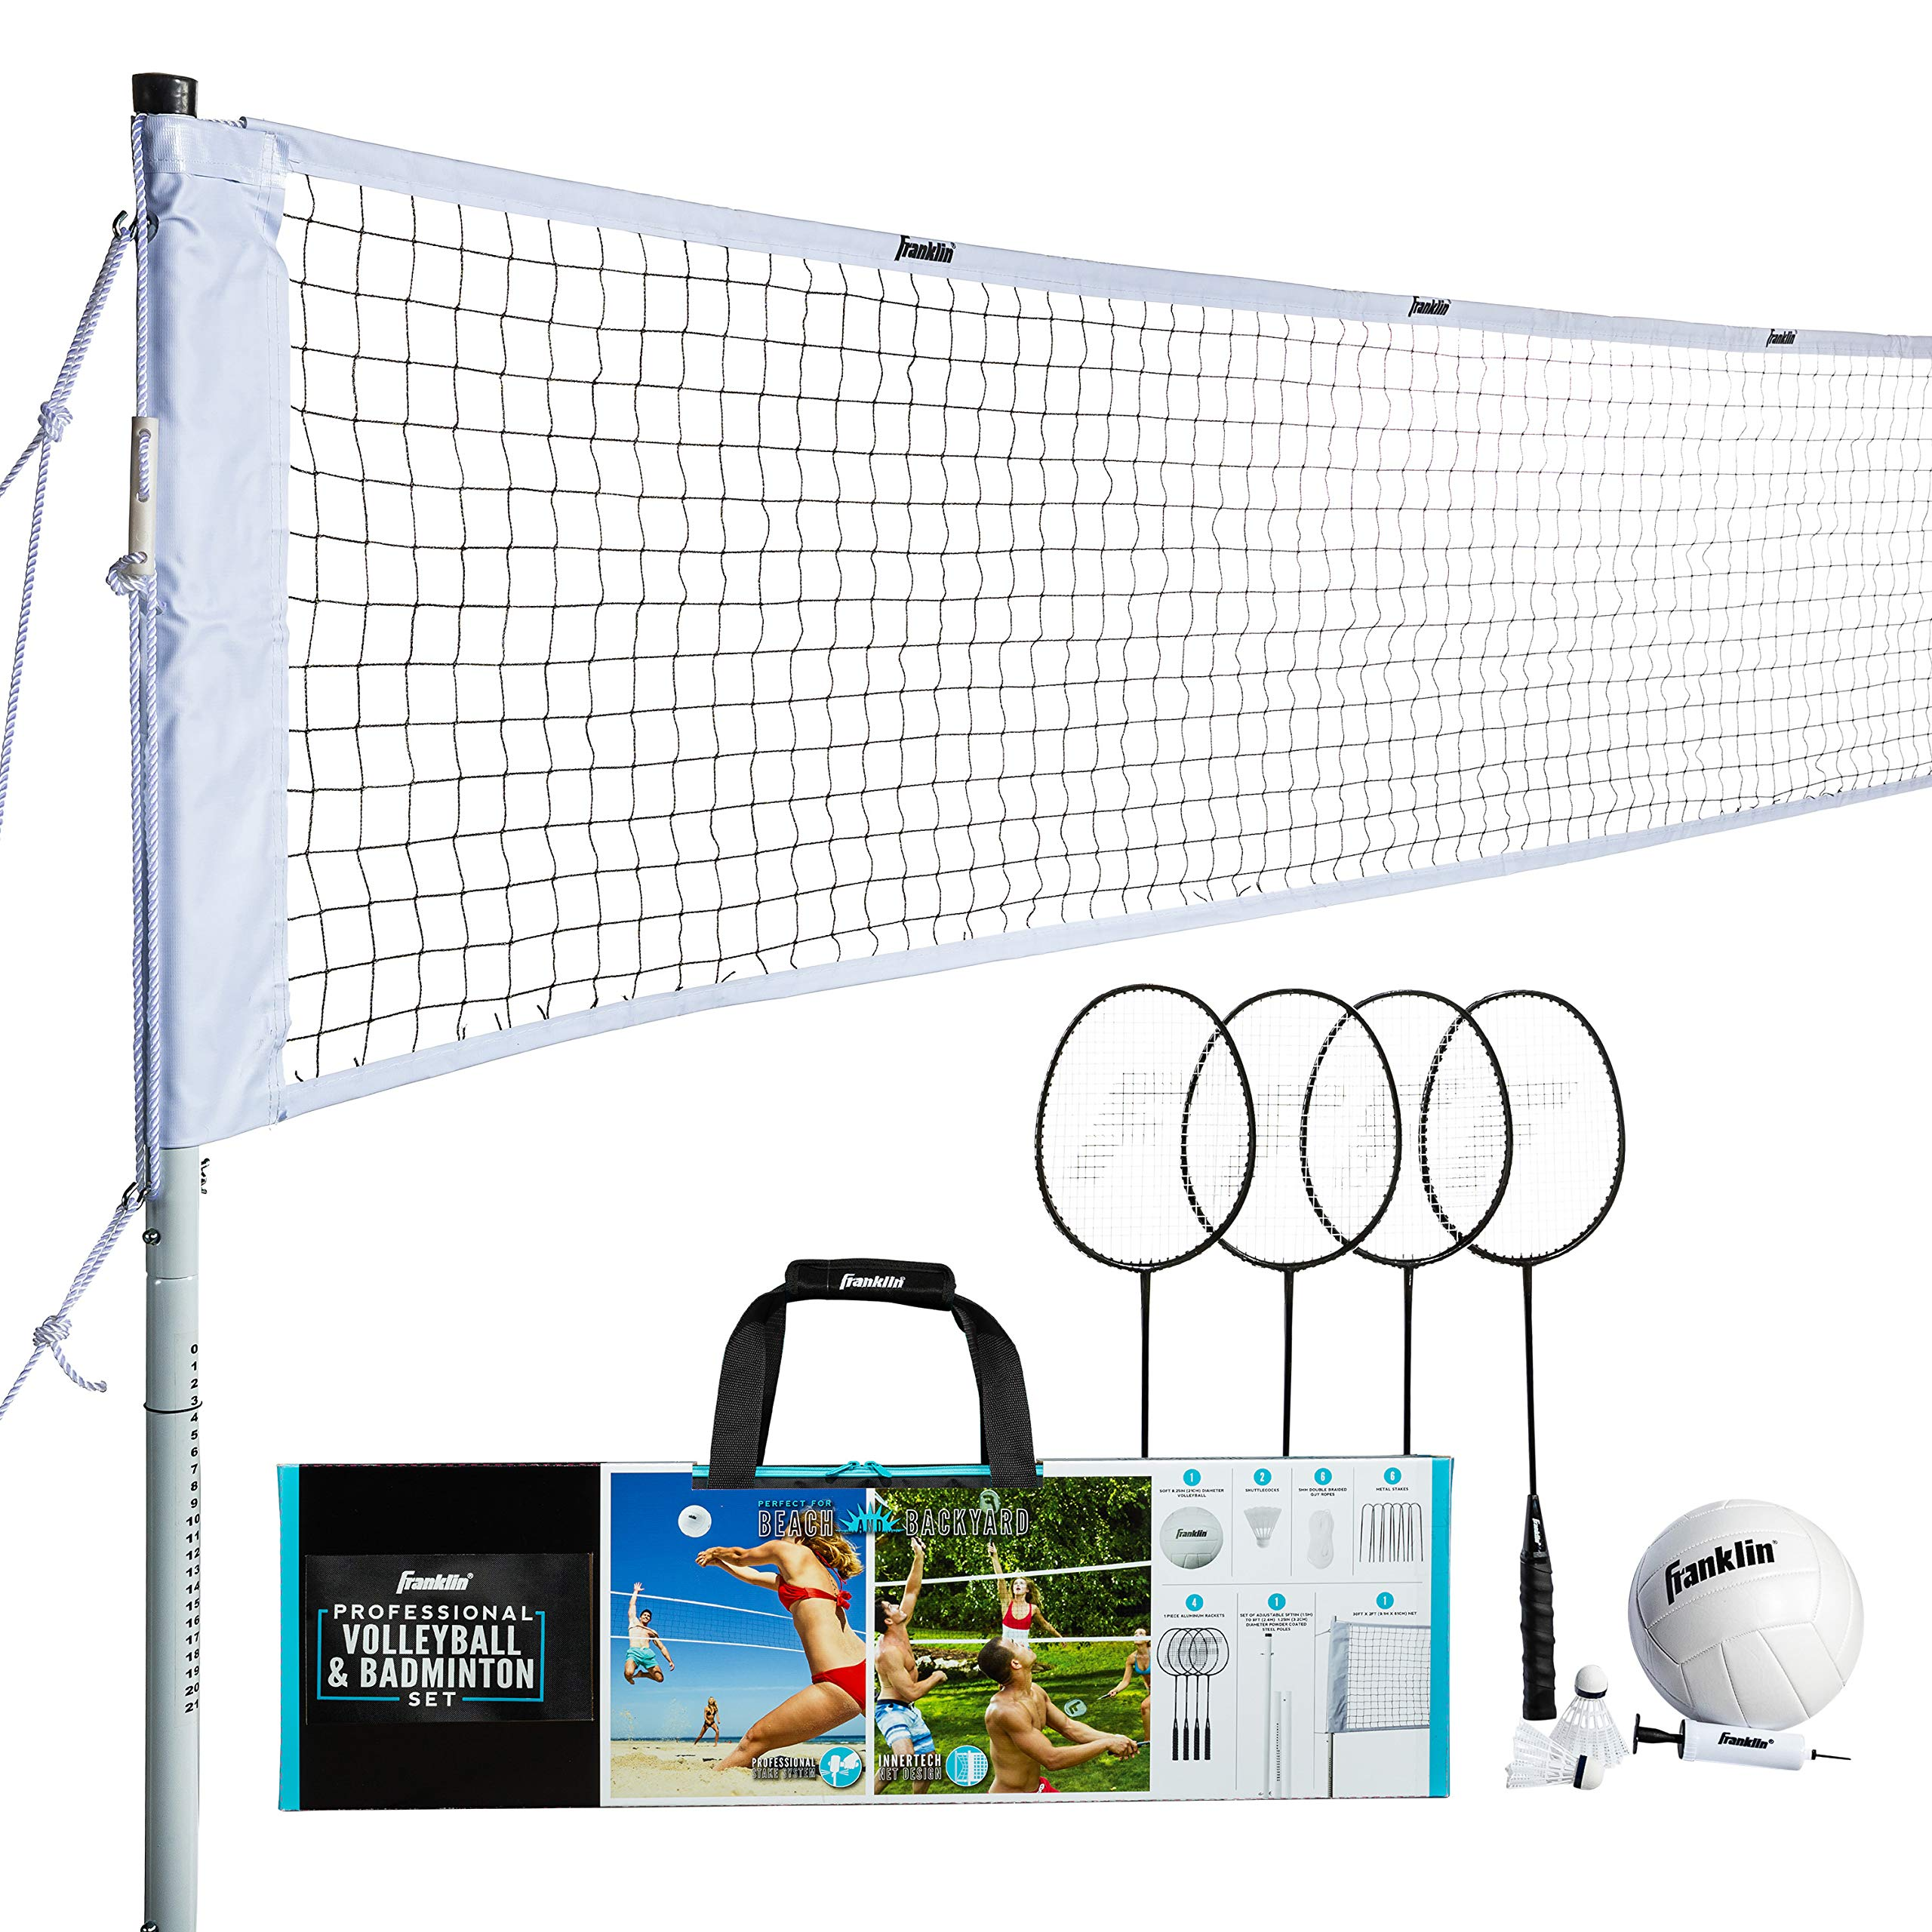 Franklin Sports Volleyball Badminton Combo Set Portable Backyard Volleyball Badminton Net Set Volleyball Rackets Birdie Included Pro Amazon Com Au Sports Fitness Outdoors